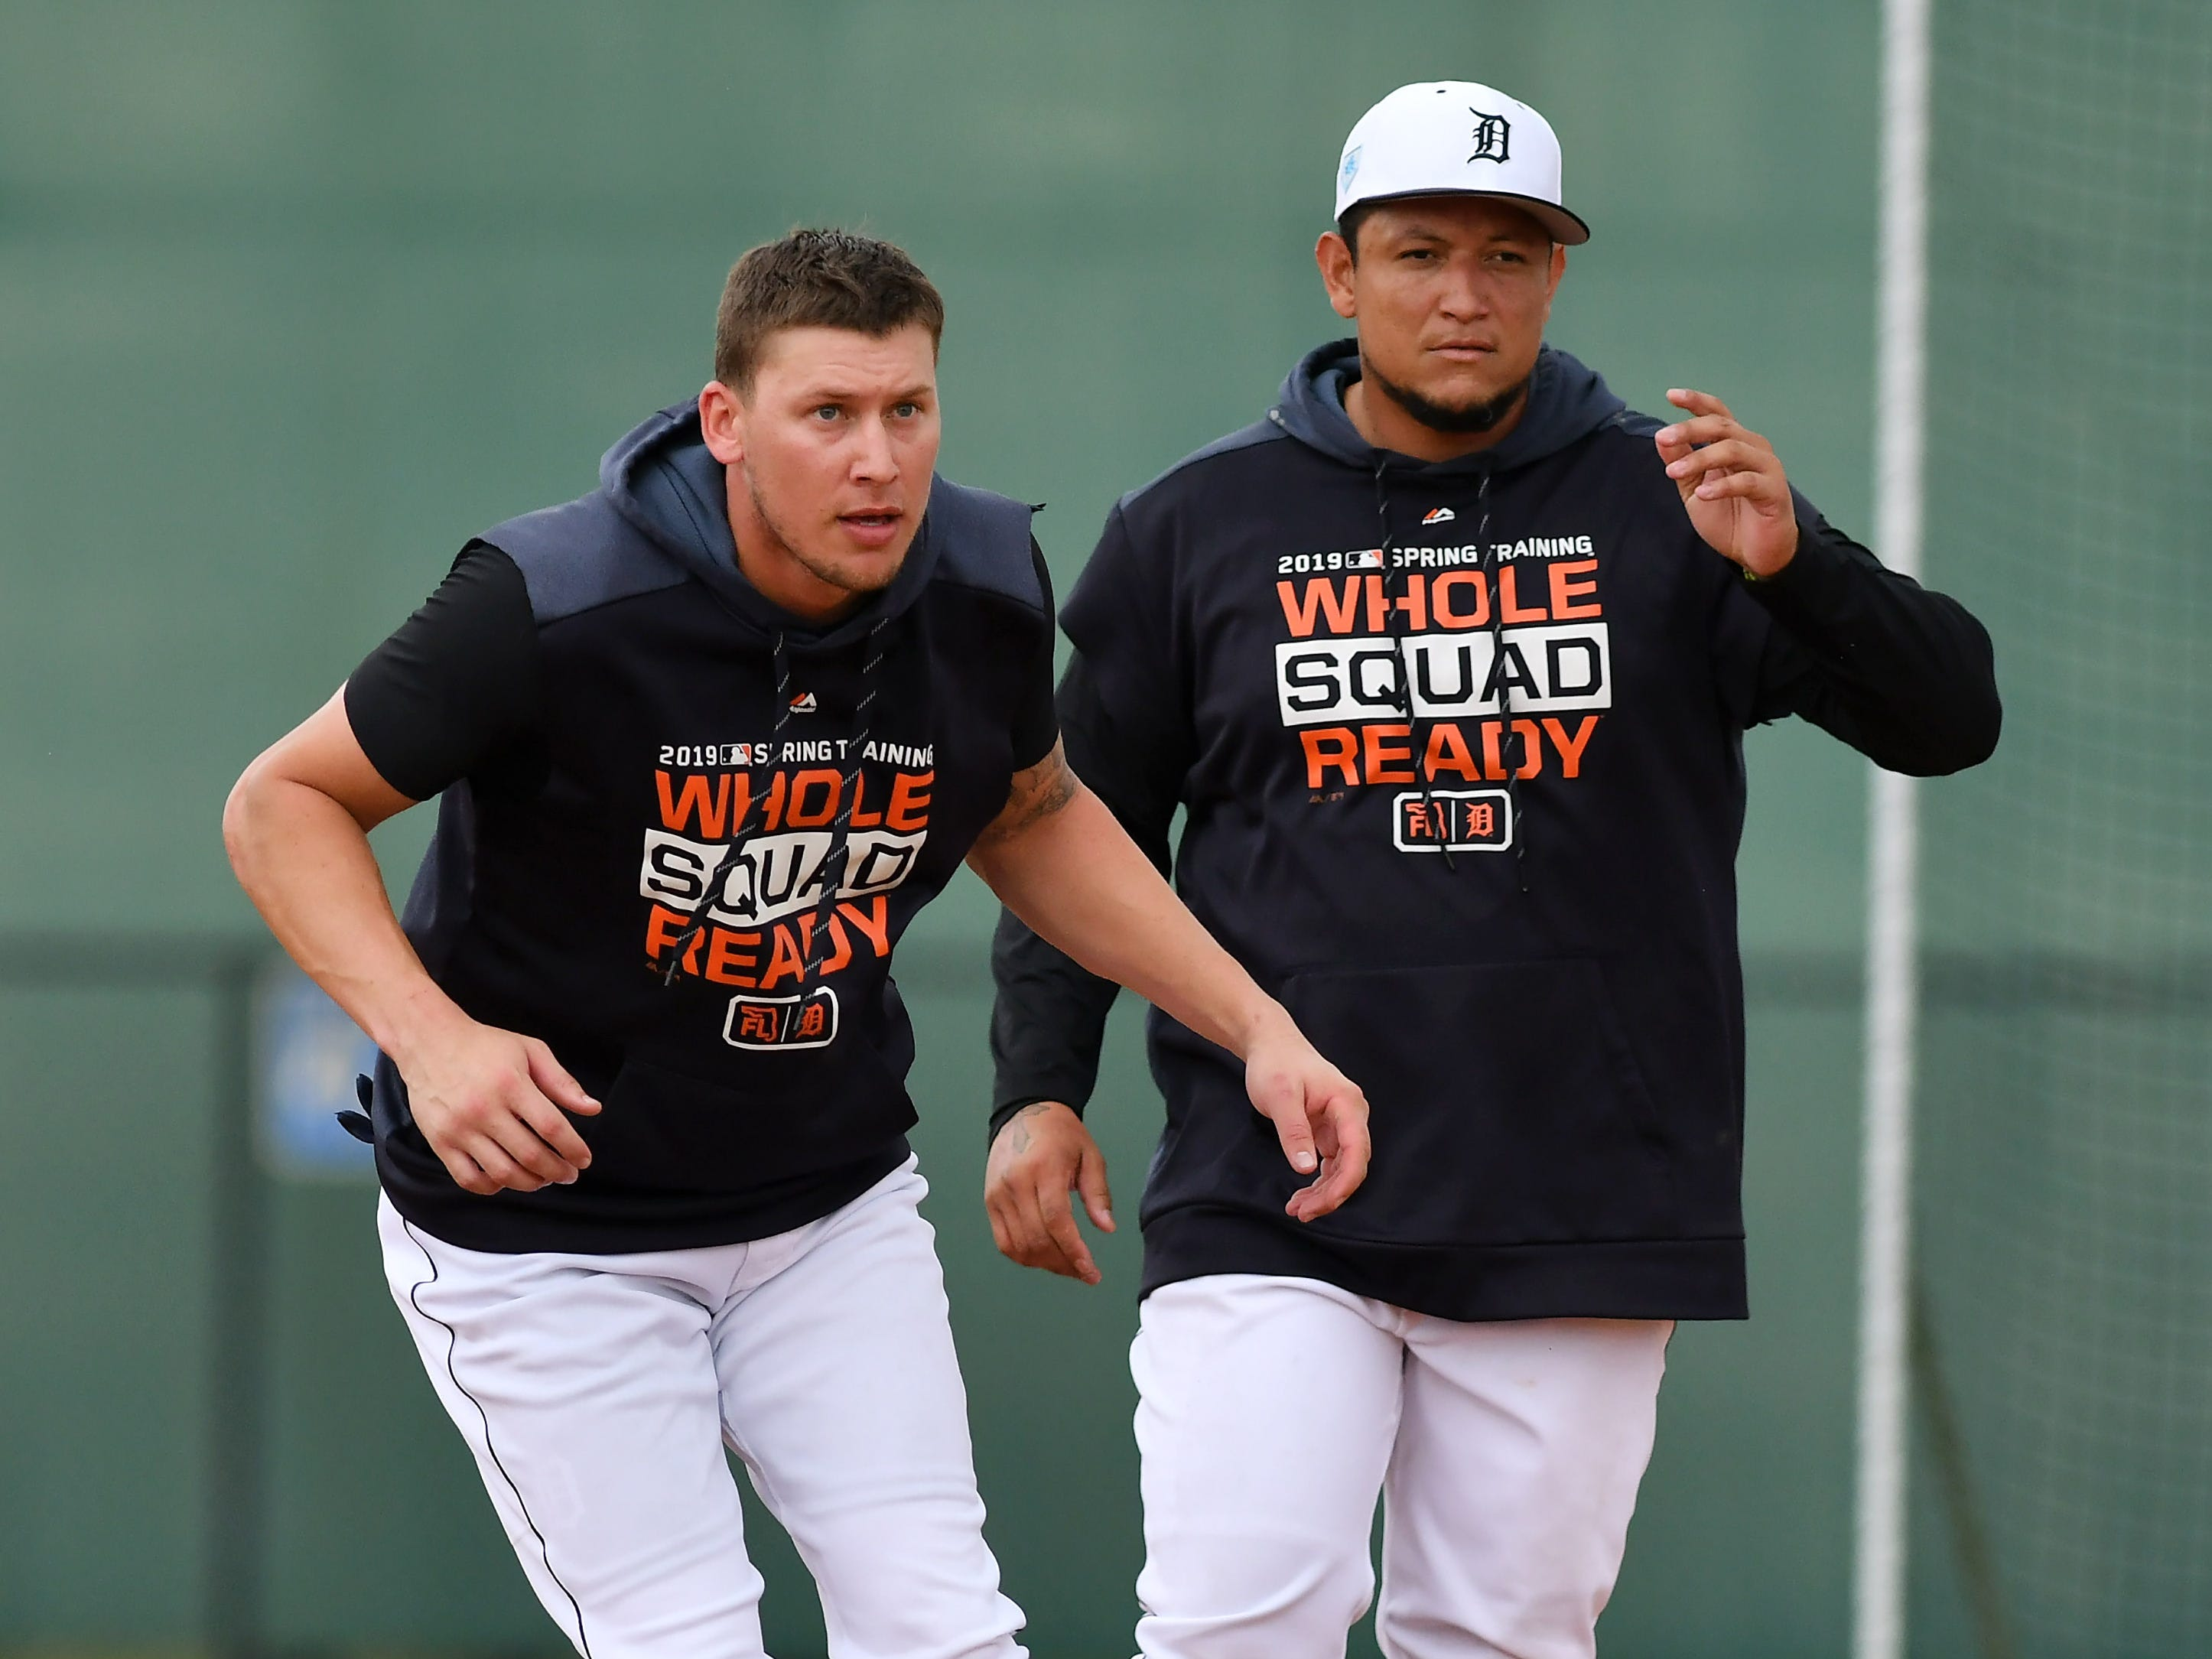 Tigers' JaCoby Jones, left, starts a base running drill next to Miguel Cabrera.